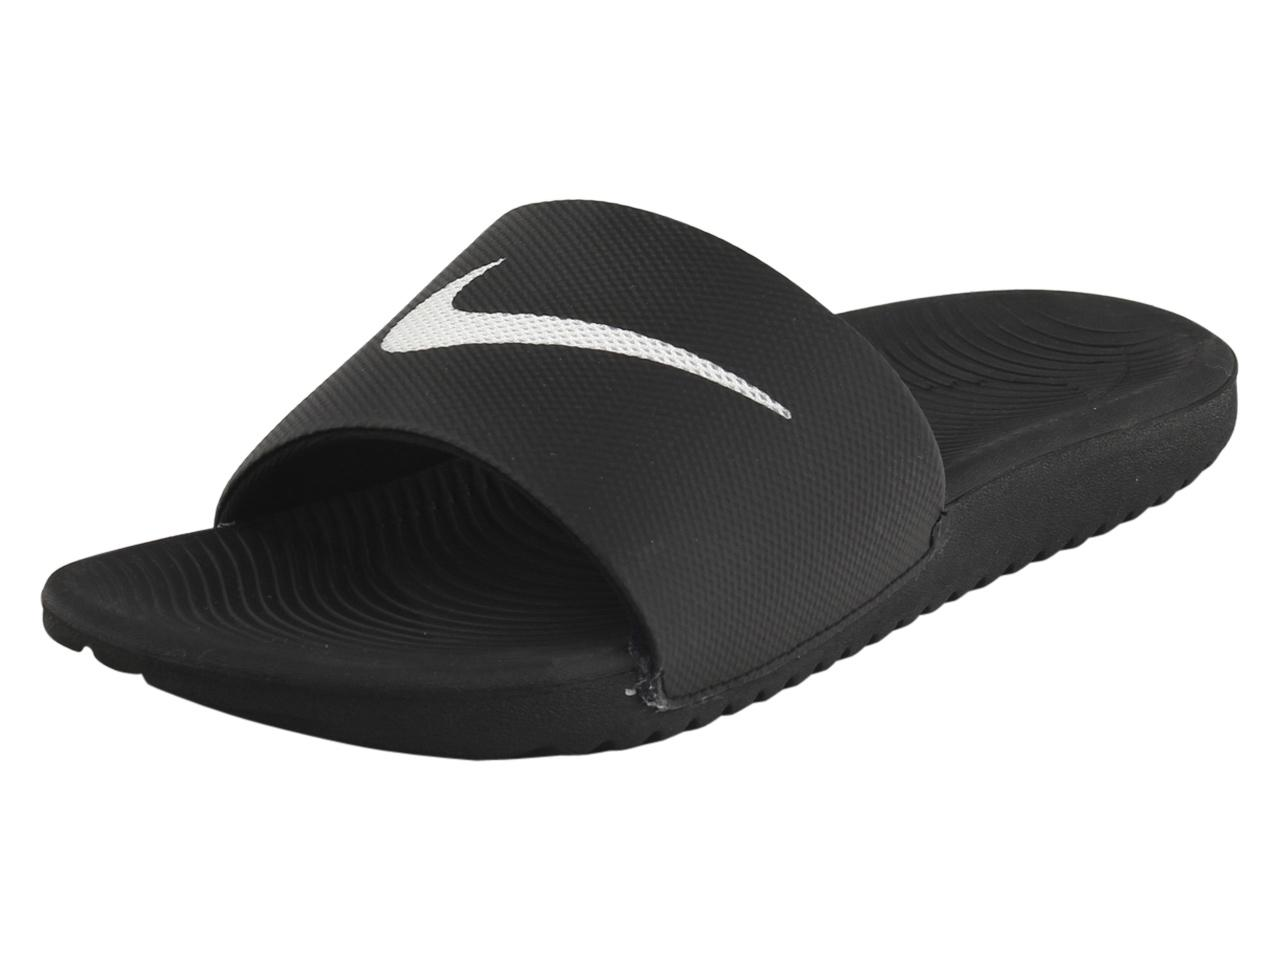 finest selection 926f1 ec744 Nike Men's Kawa Slides Sandals Shoes